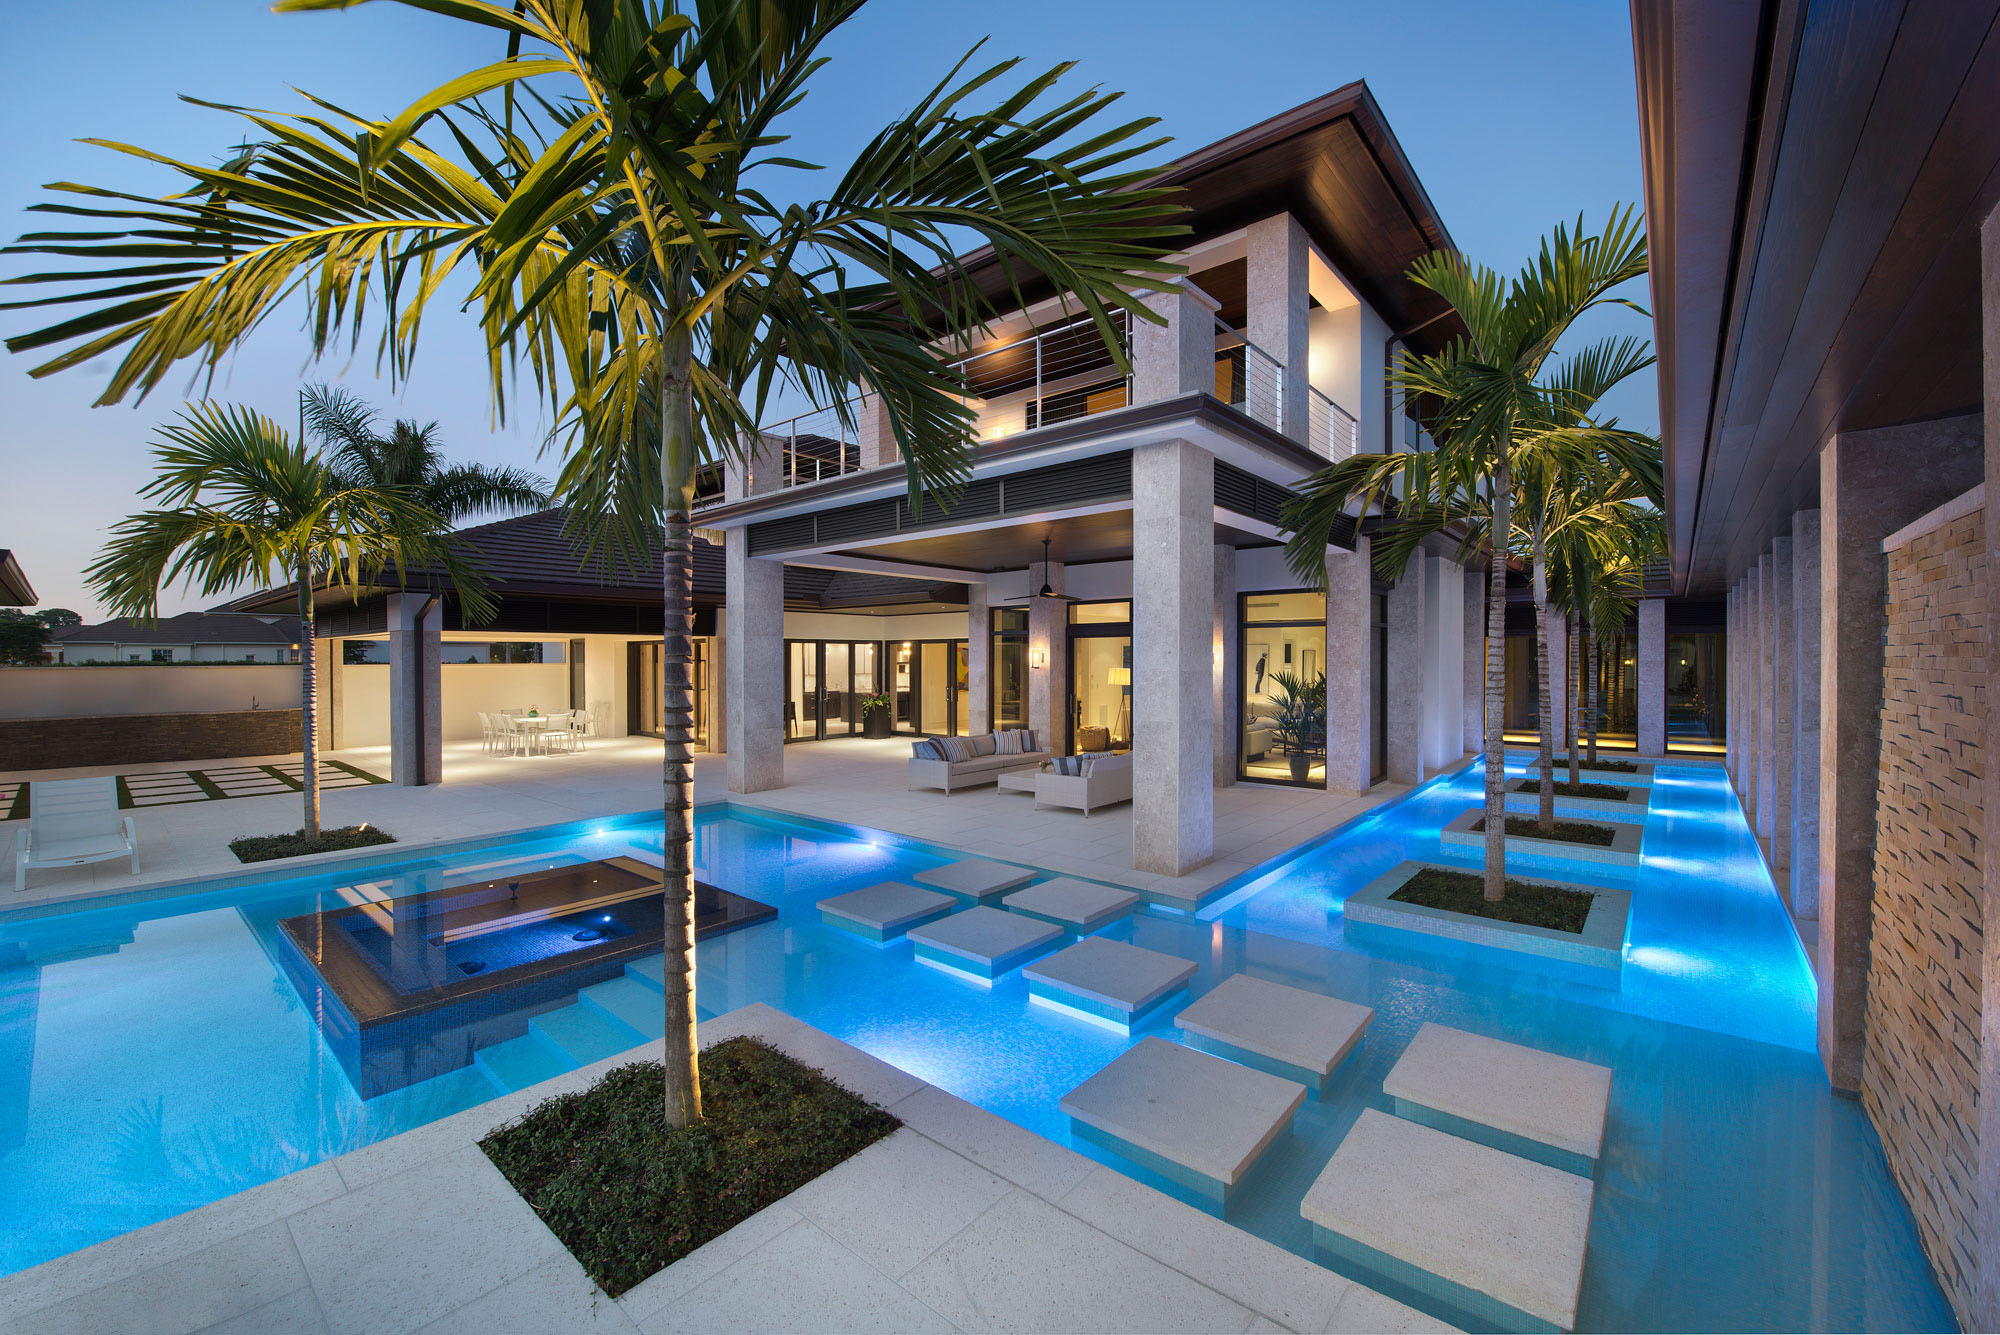 Custom dream home in florida with elegant swimming pool for Pool design concepts sarasota